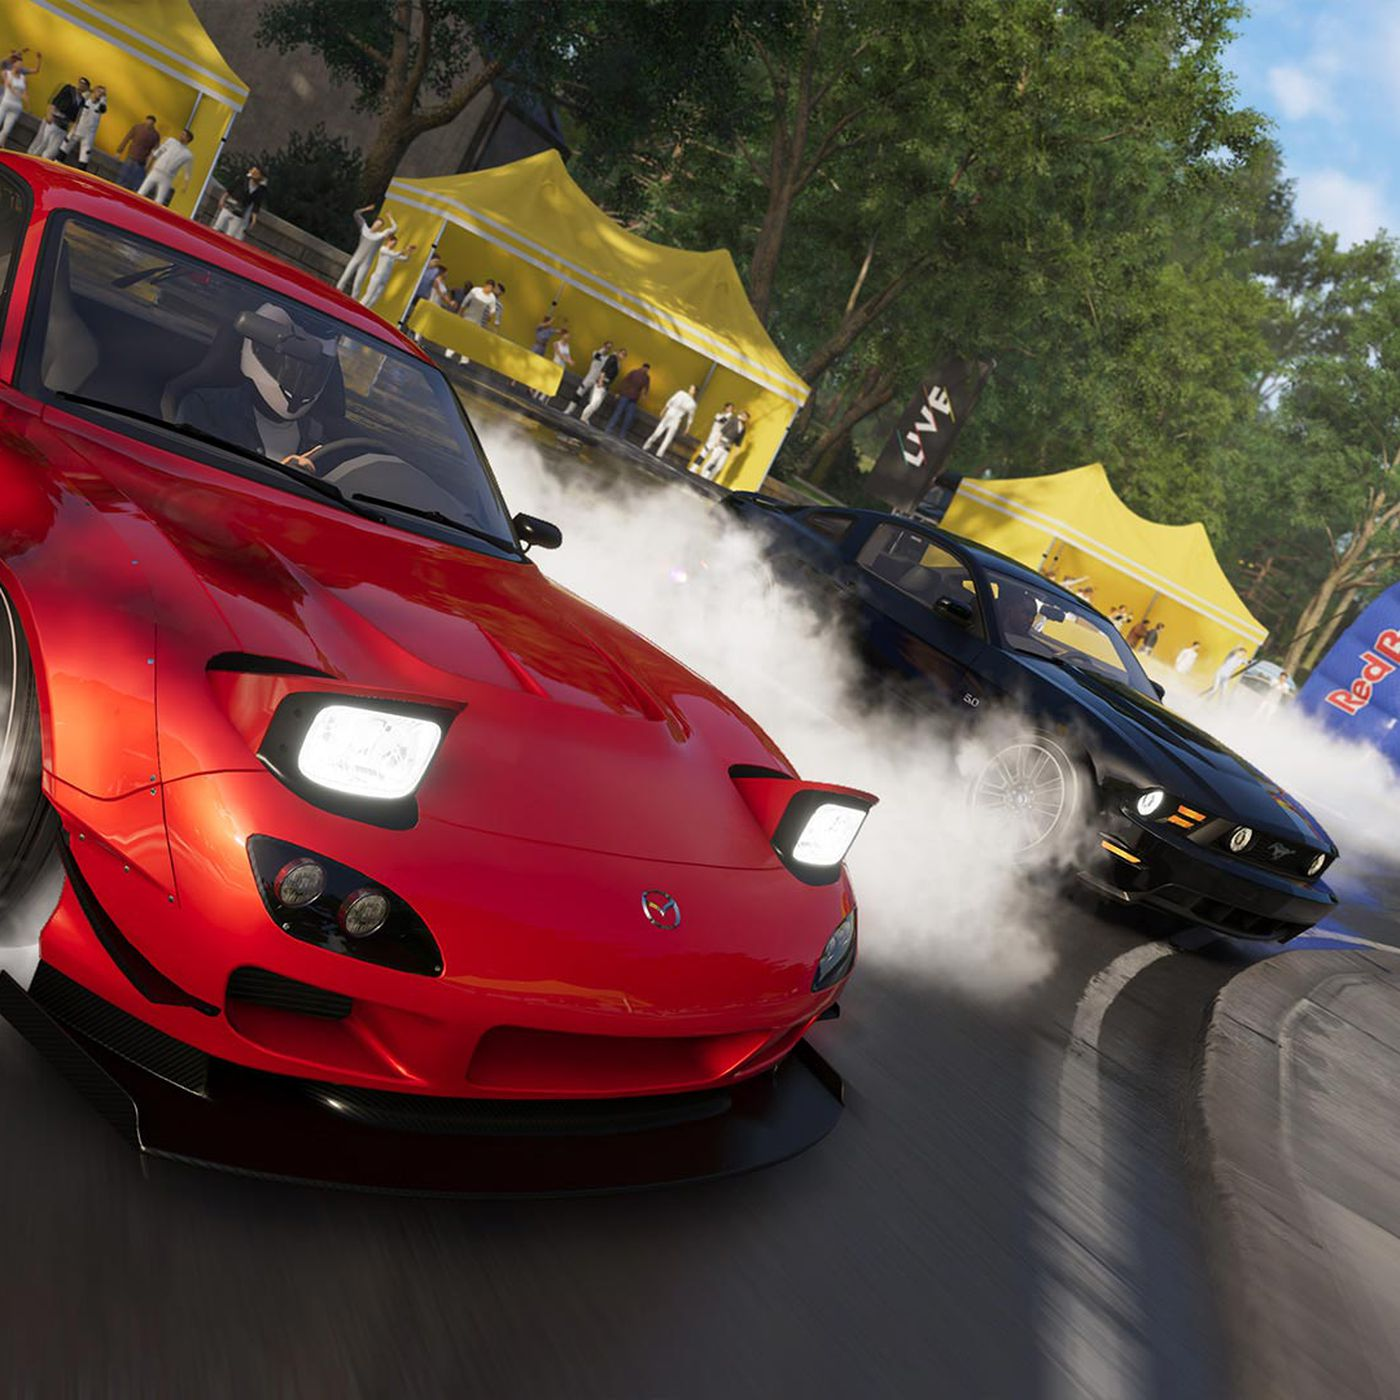 The Crew 2 is a ton of fun once you pretend it's IRL Mario Kart